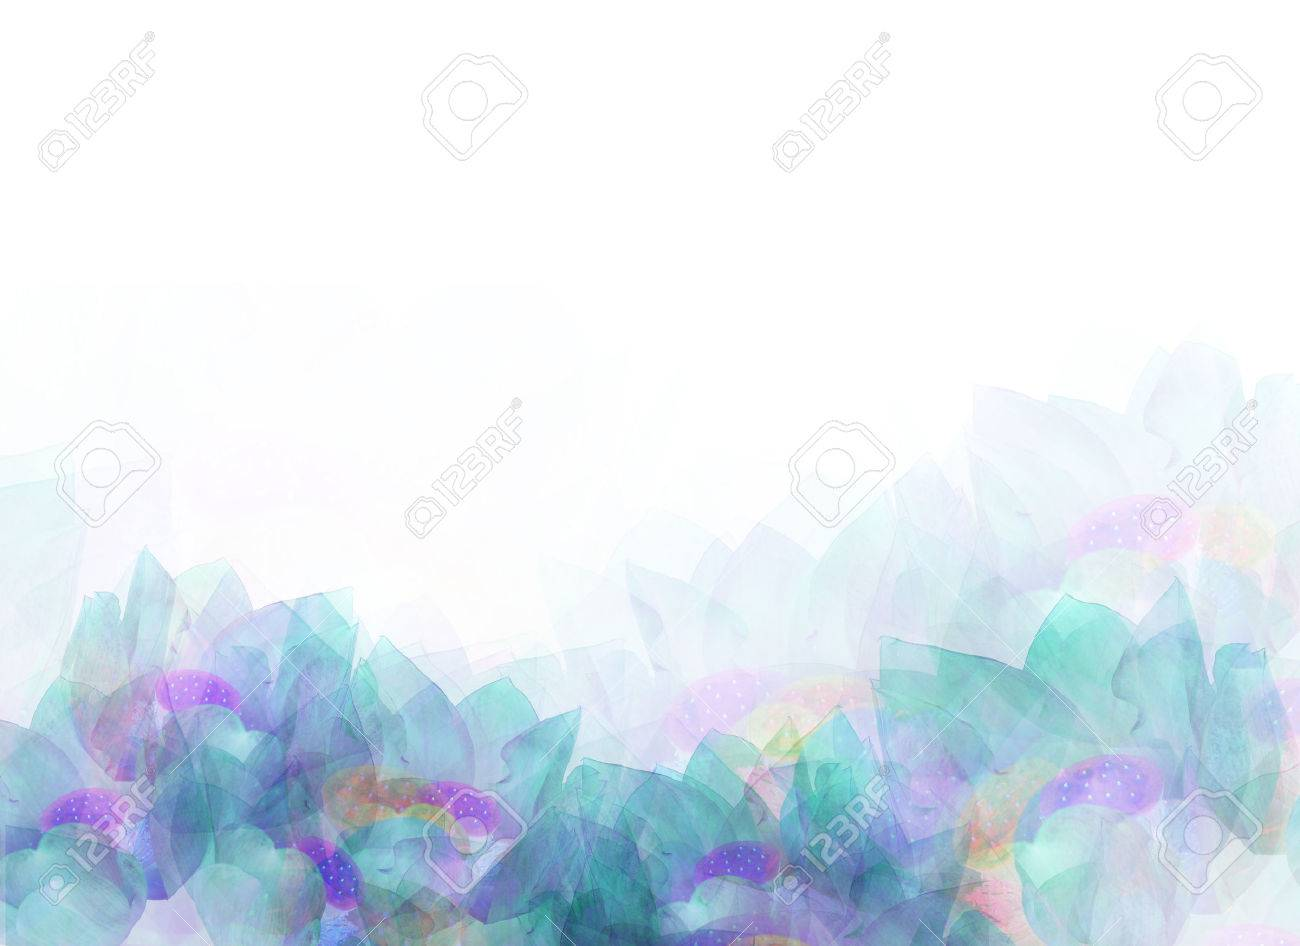 Abstract soft flower background, design - 59433982